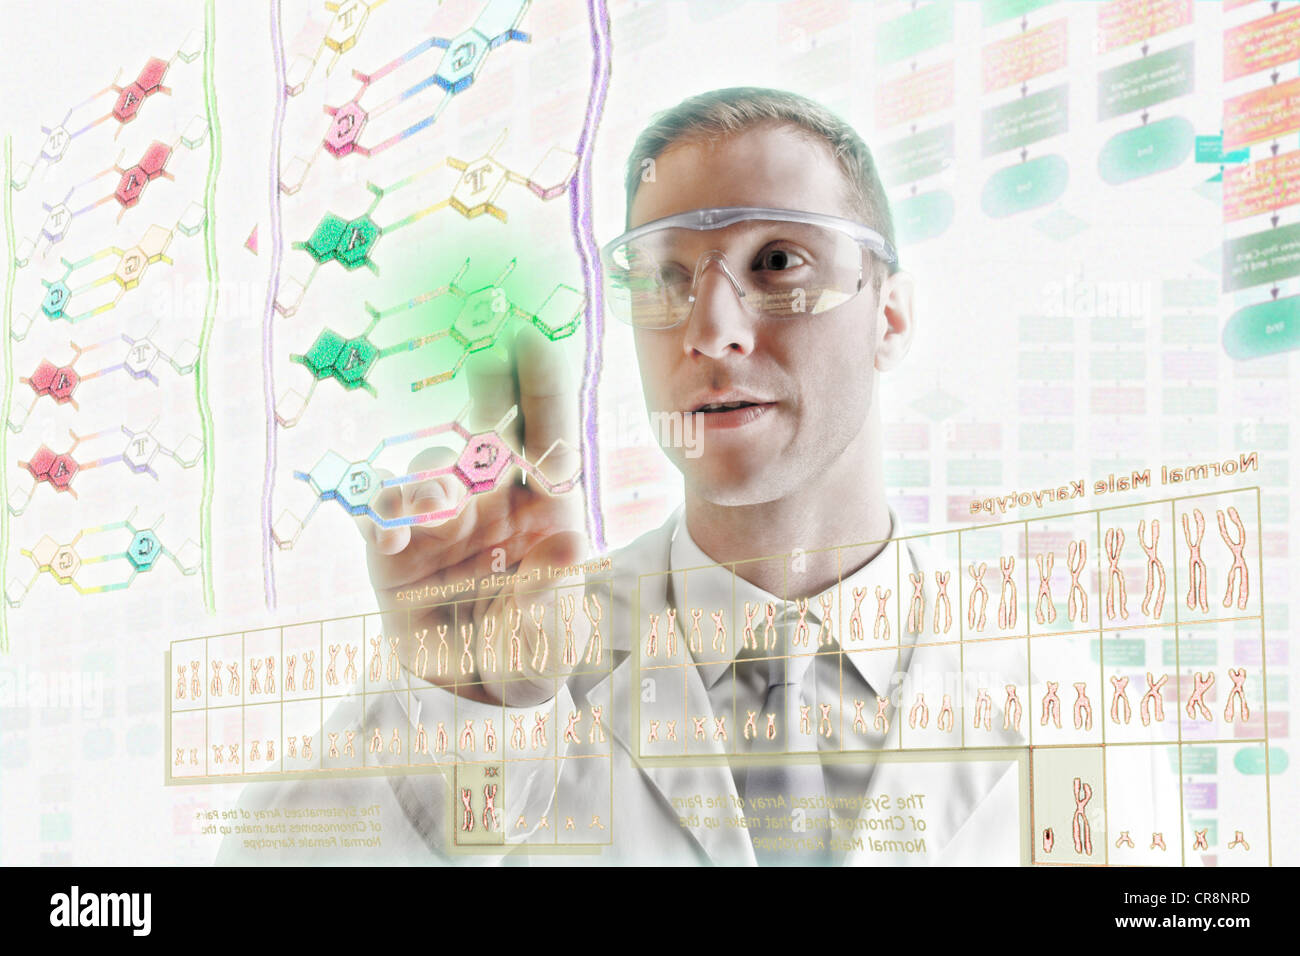 Scientist interacting with holographic screens - Stock Image